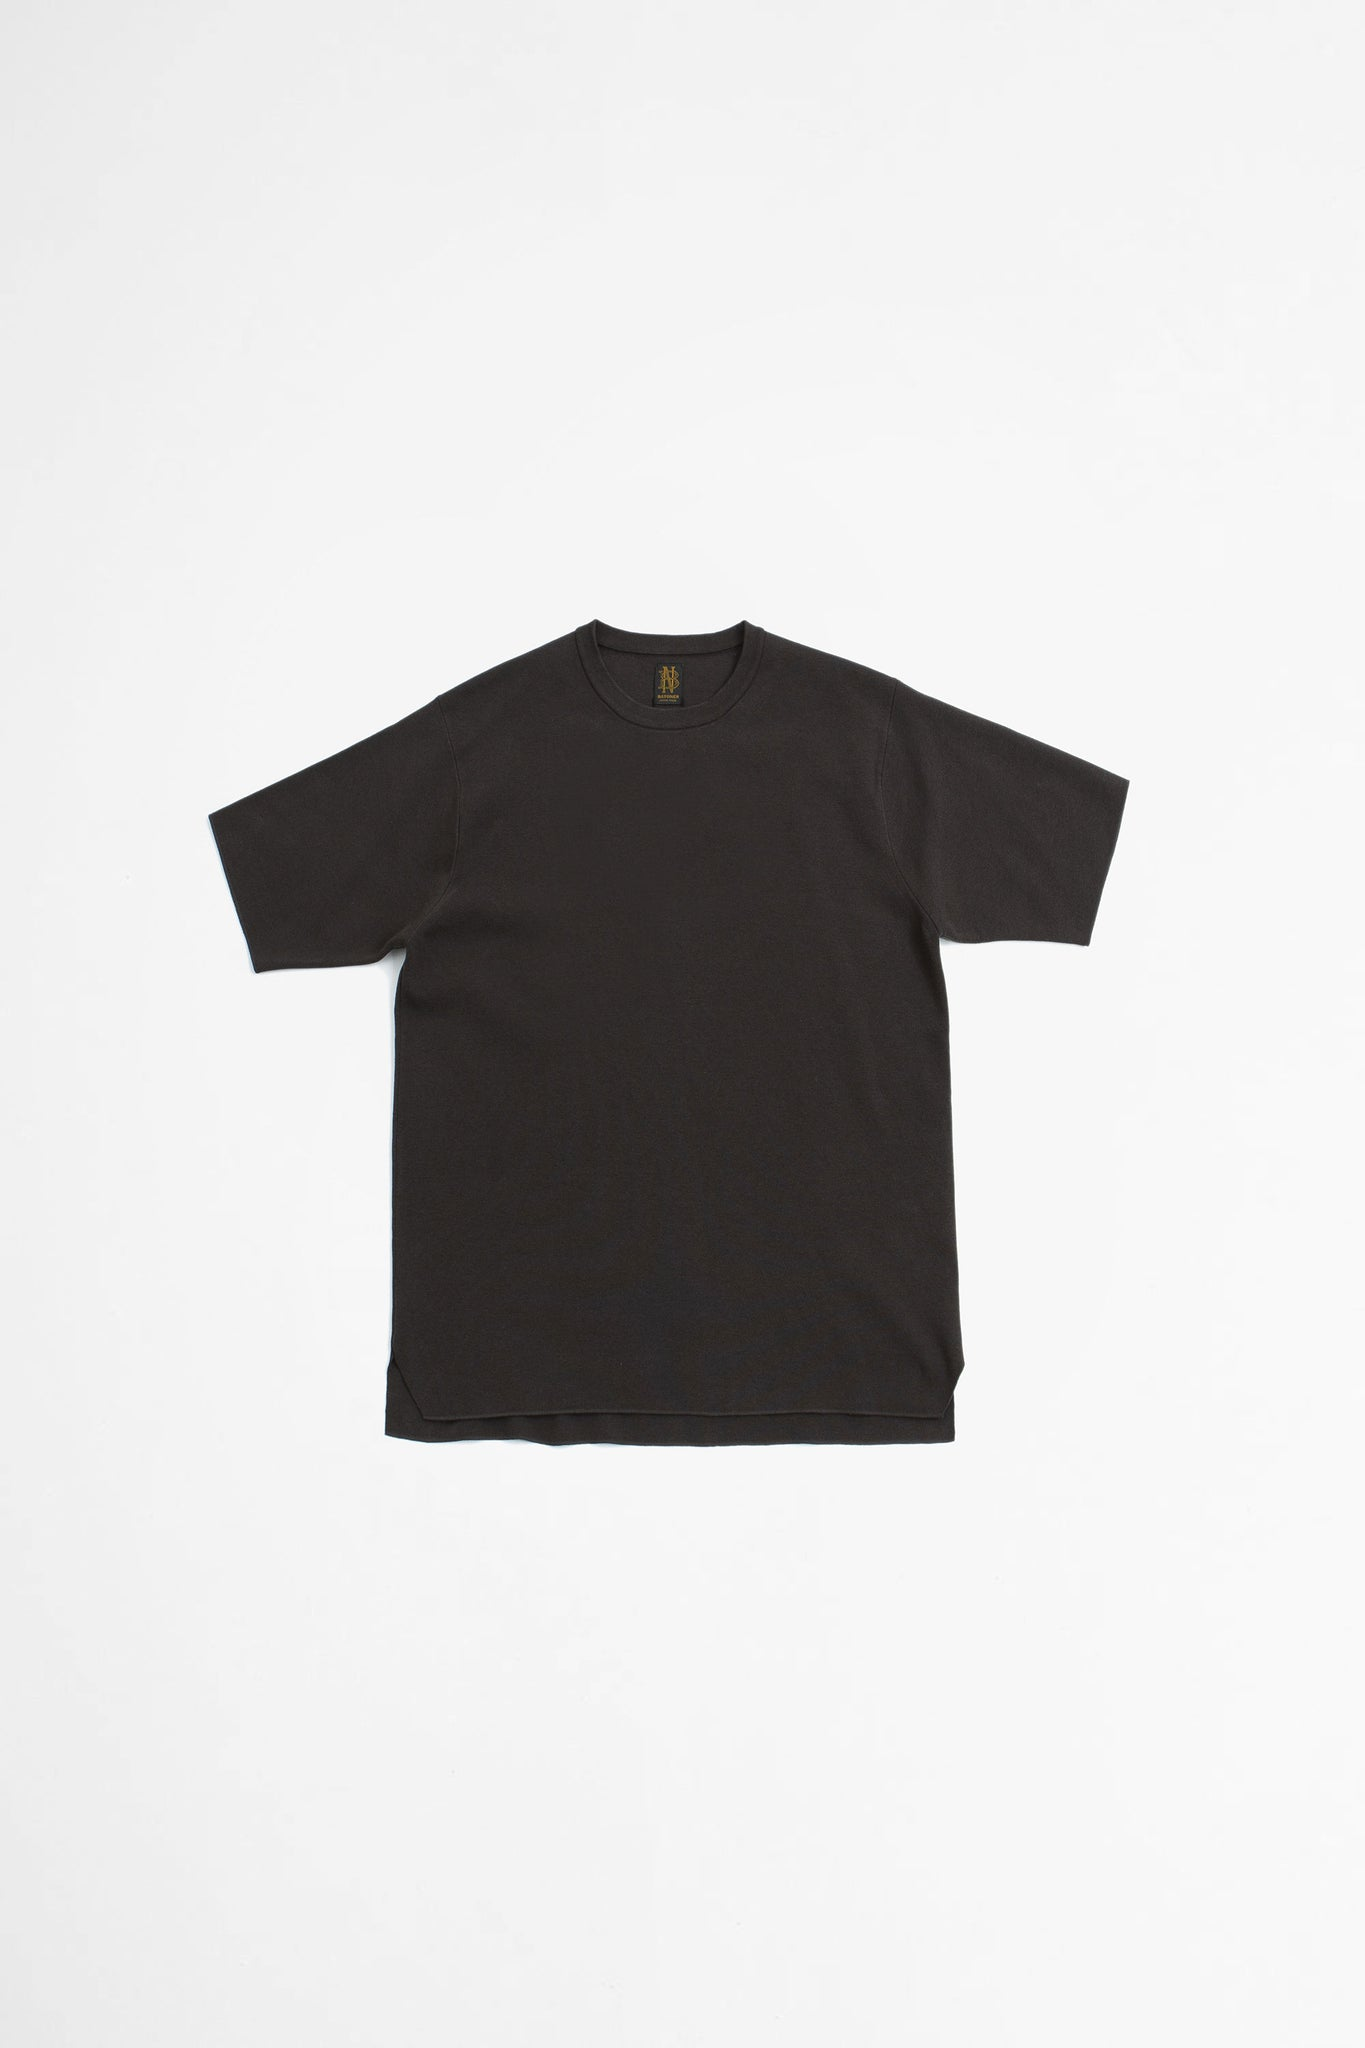 Smooth knit t-shirt brown